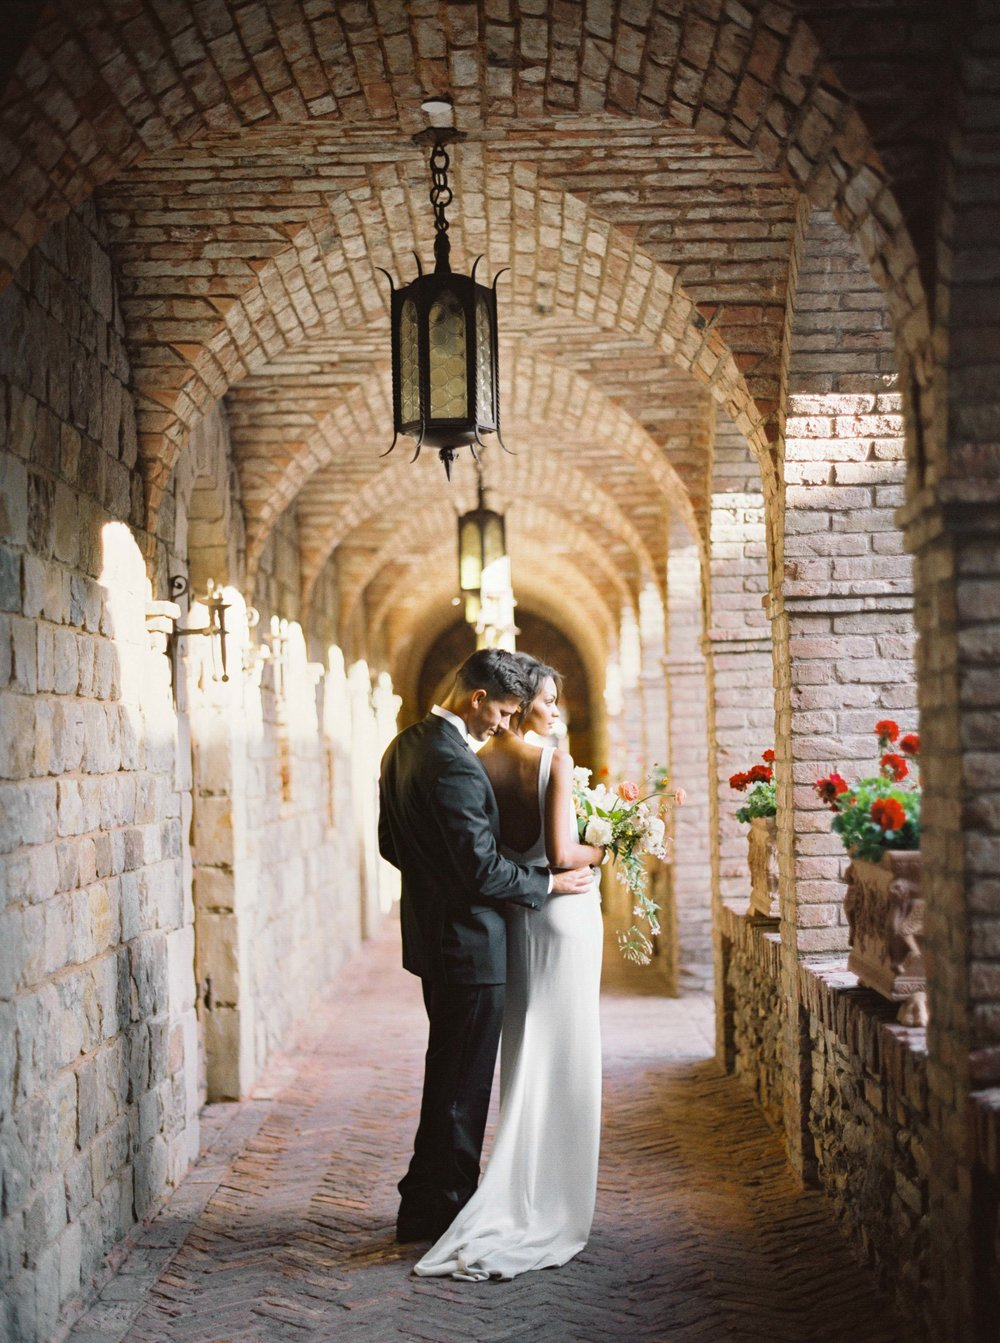 036napa_wedding_photographer_and_videographer_destination_and_elopement_photography.jpg